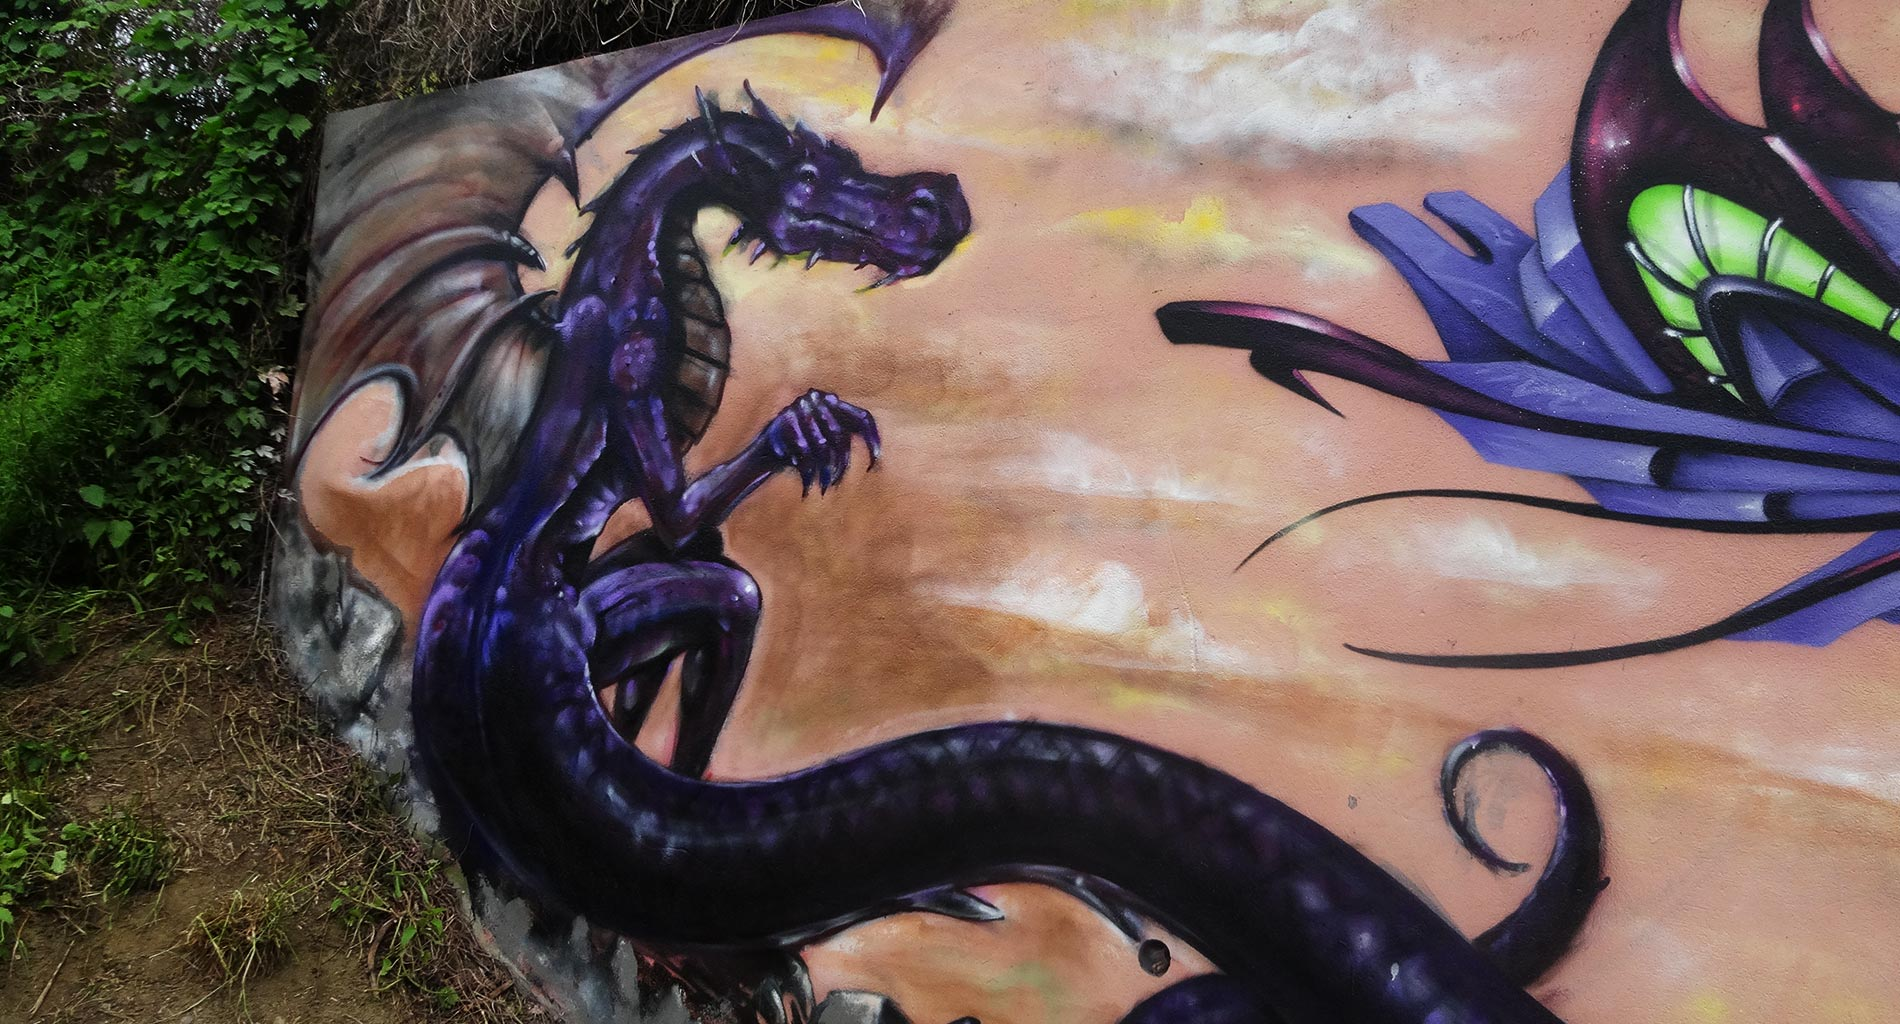 Apogé - Fresque Dragon - Graffiti - Clermont-Ferrand